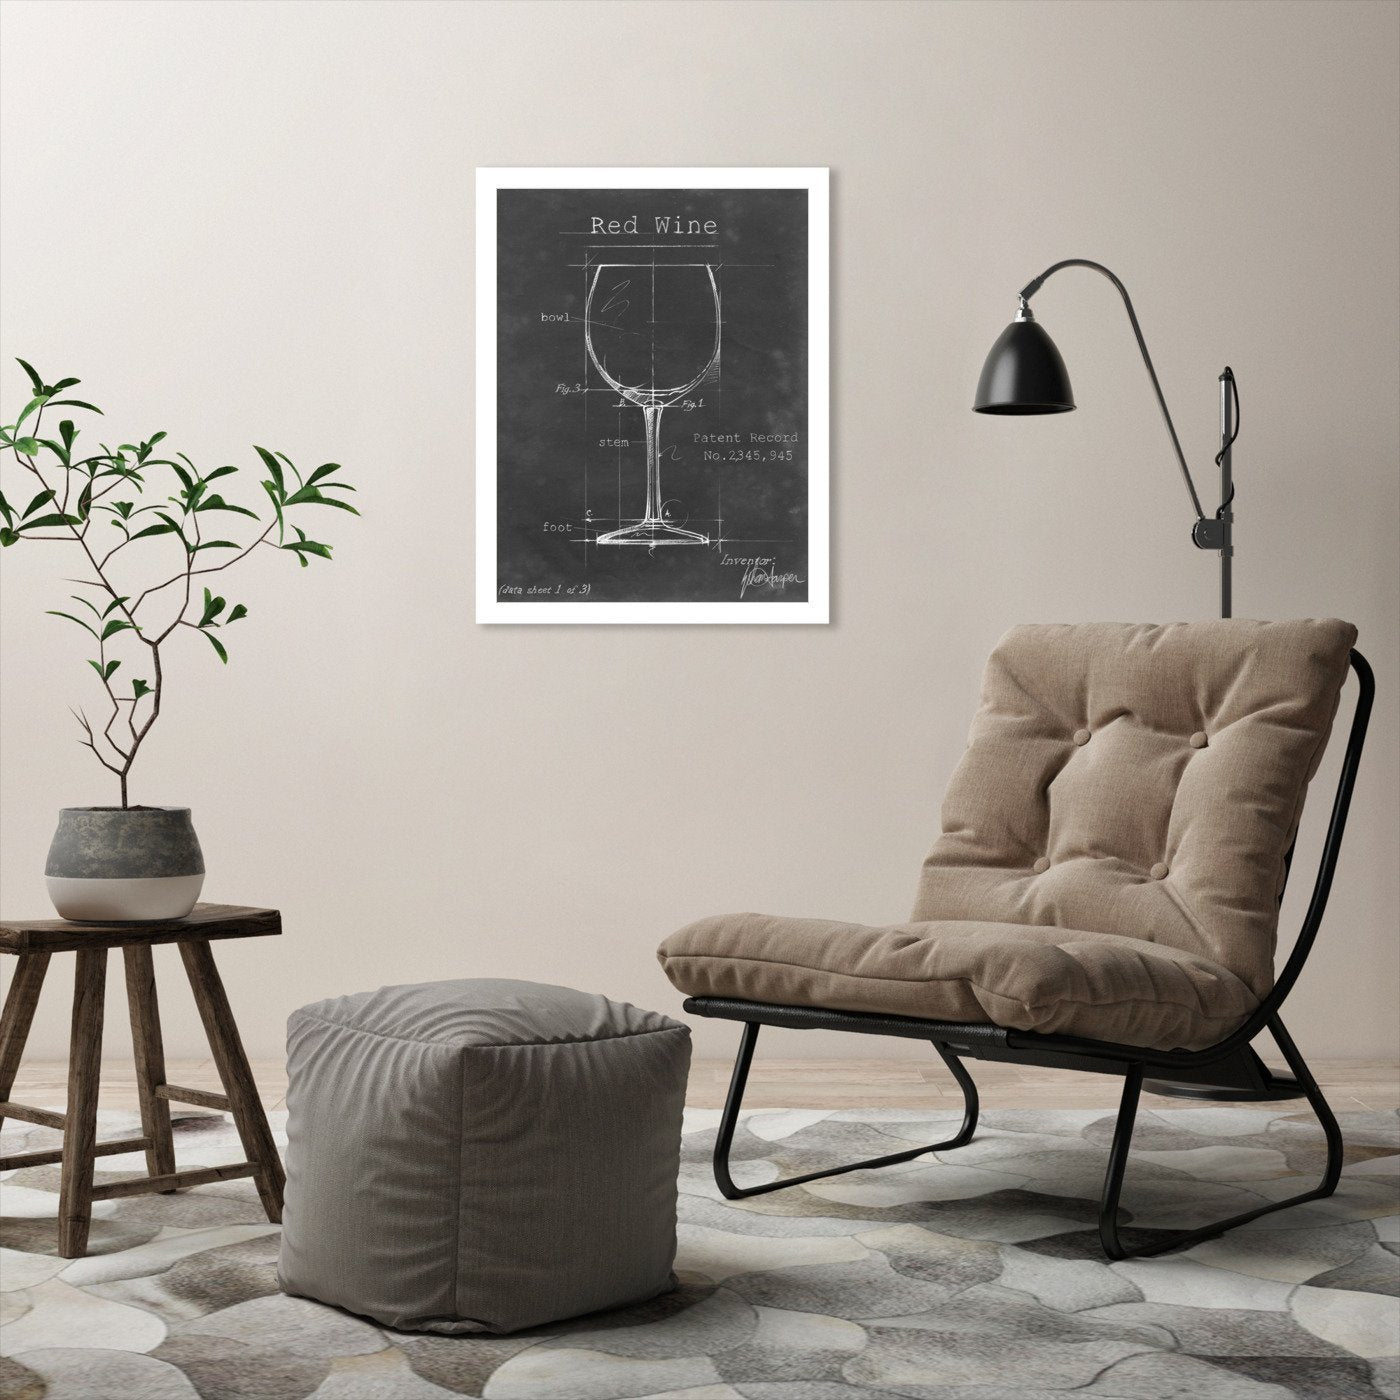 Barware Blueprint III by Ethan Harper by World Art Group - White Framed Print - Wall Art - Americanflat